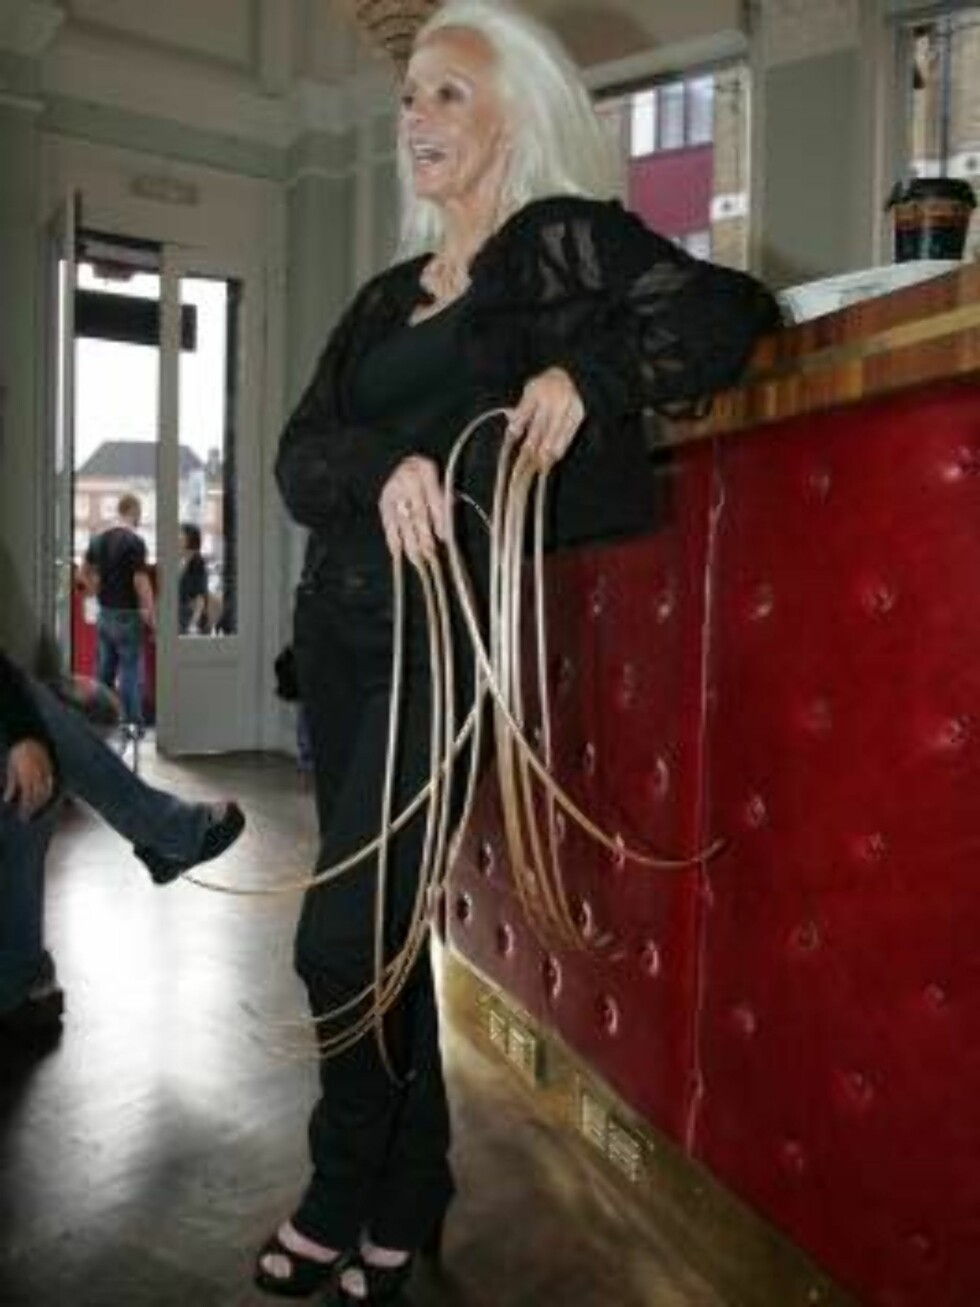 London 2006-09-28  Lee Redmond, 65, from Utah  has  grown a part of her body to world extreme lengths and quality for an entry in  the 2007 edition of Guiness World Records. Lee has been growing her fingernails since 1979. They currently reach a combined Foto: Stella Pictures